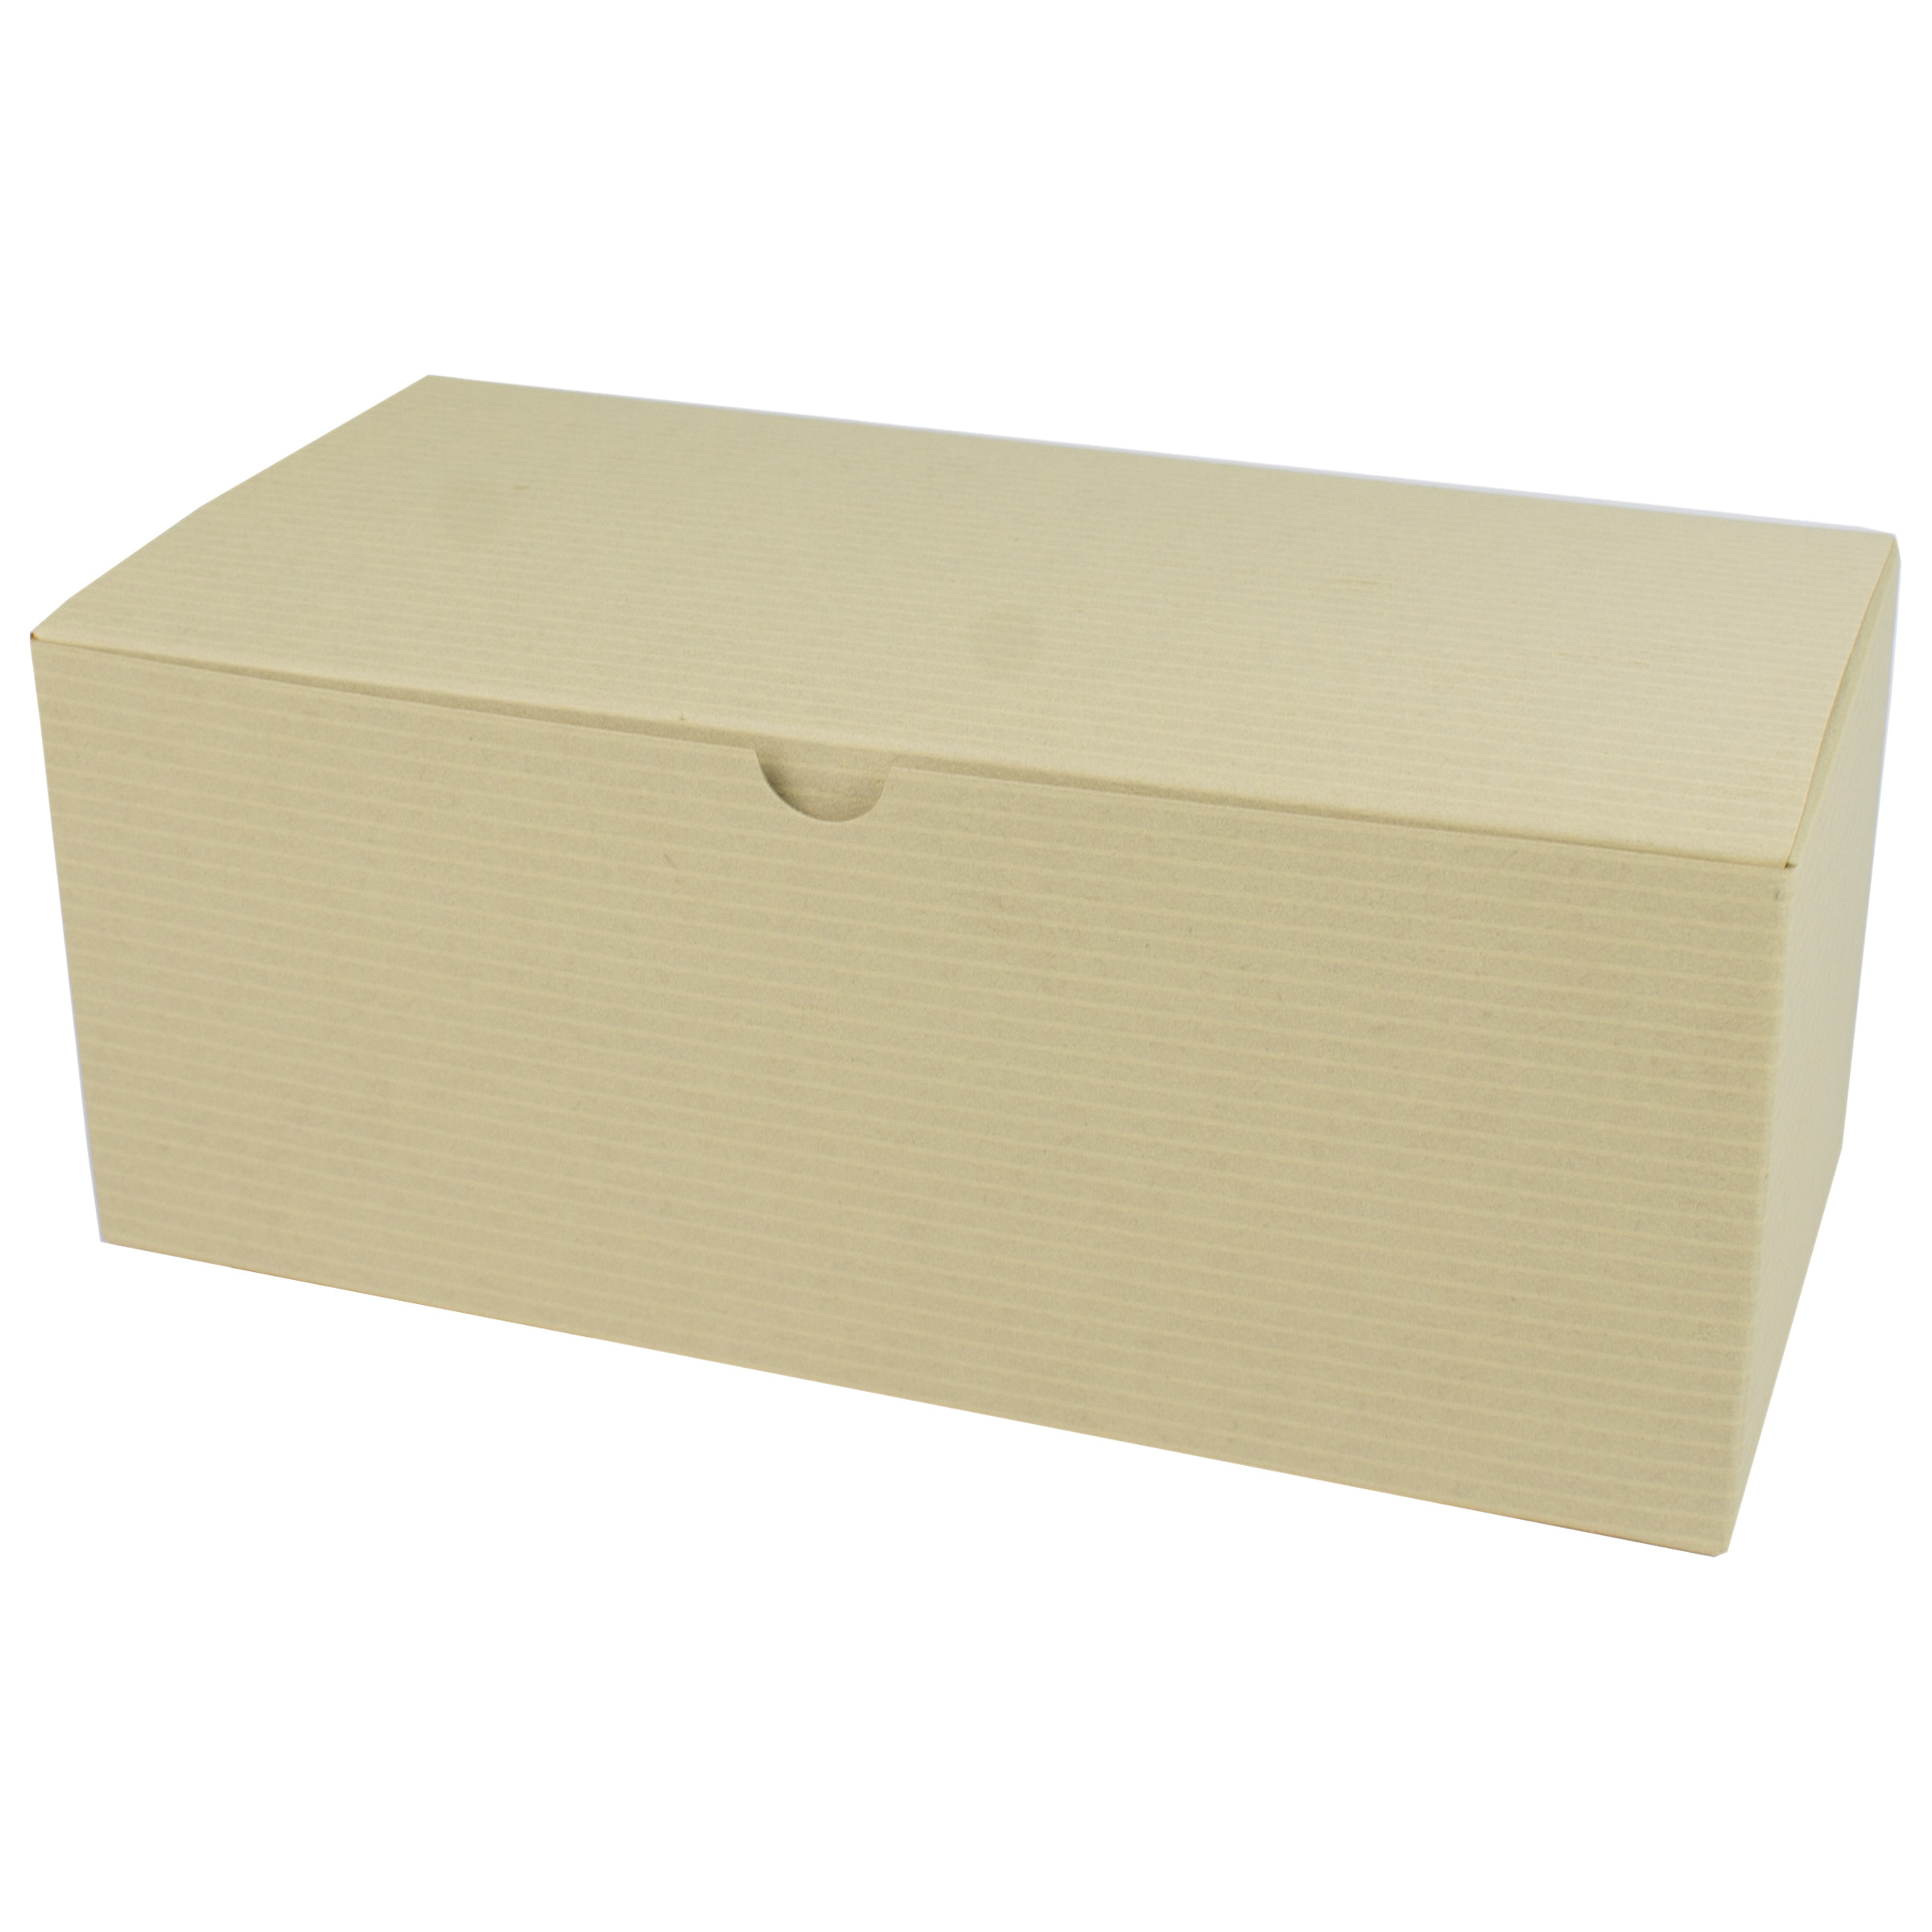 9 x 4.5 x 4.5 OATMEAL TINTED TUCK-TOP GIFT BOXES